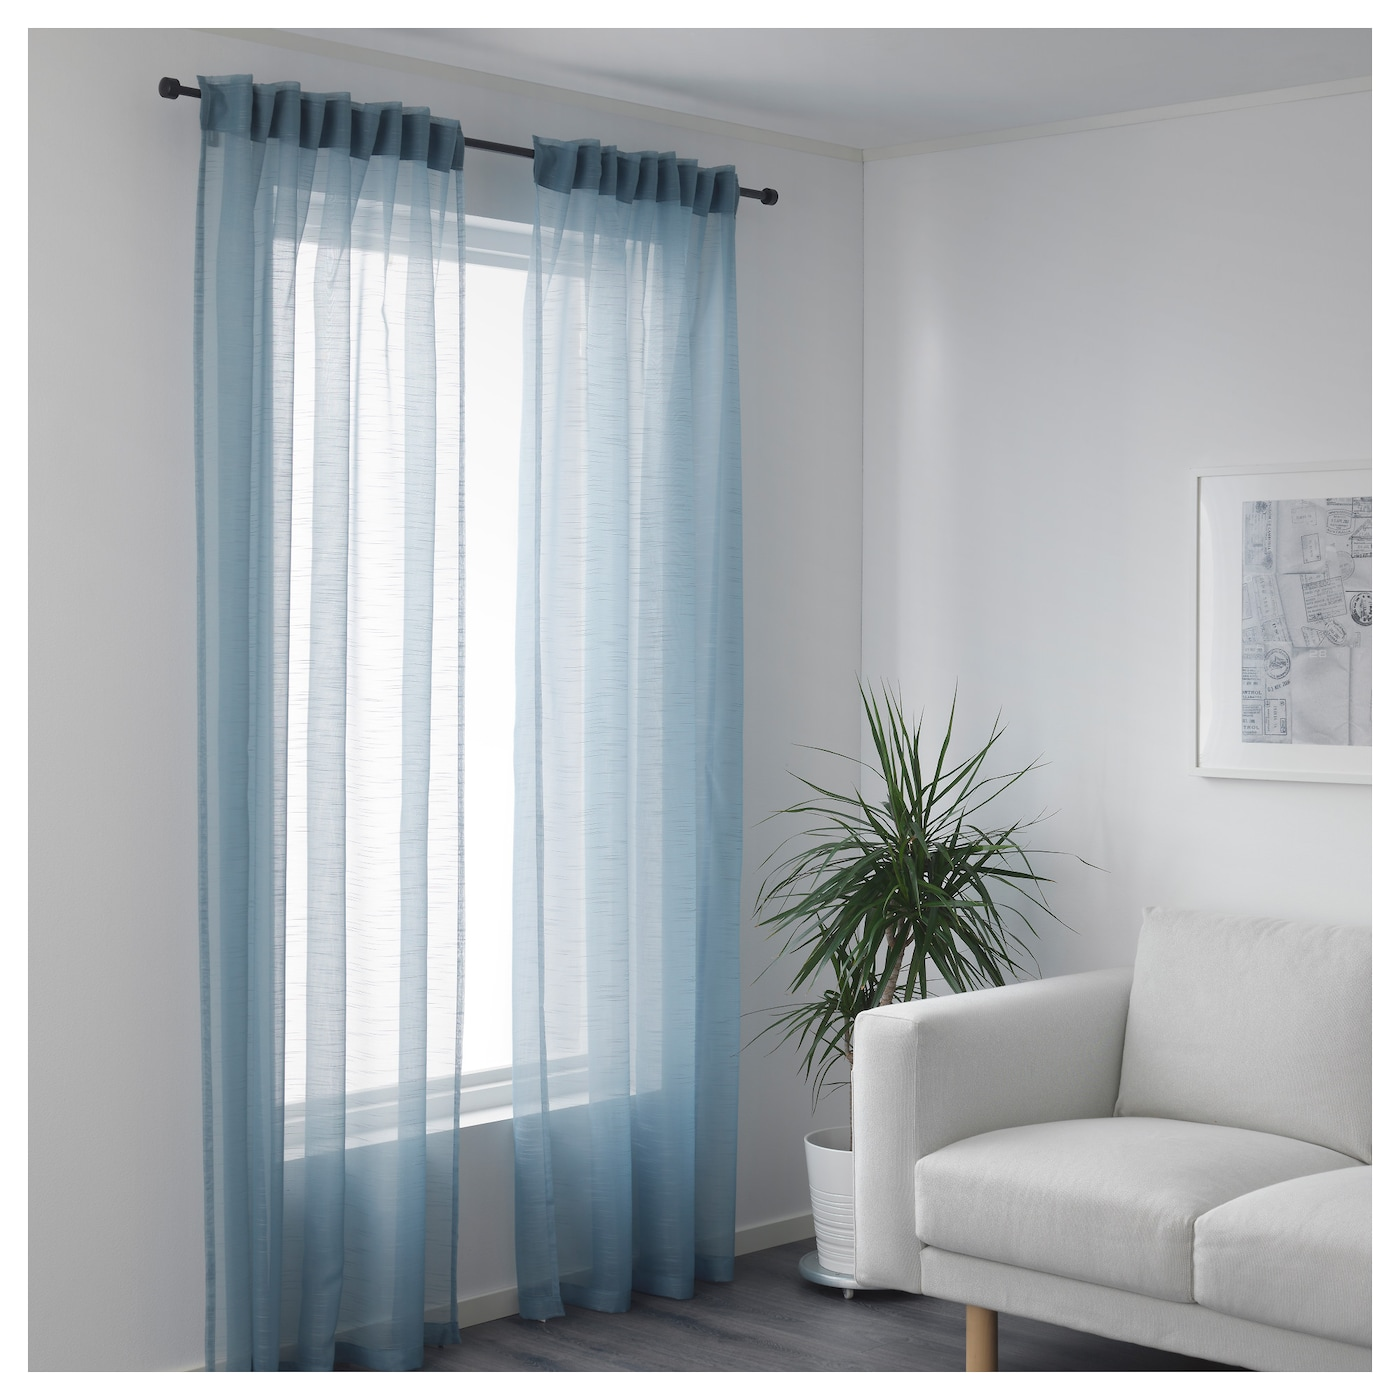 scarf floral wildlife linen dry plastic track clean window rail included tiers thermal darkening rod room long cornice wash curtains sheer pencil easy only sports standard hand pleat coastal aqua care hardware blue hooks kids orange polyester curtain insulation rustic